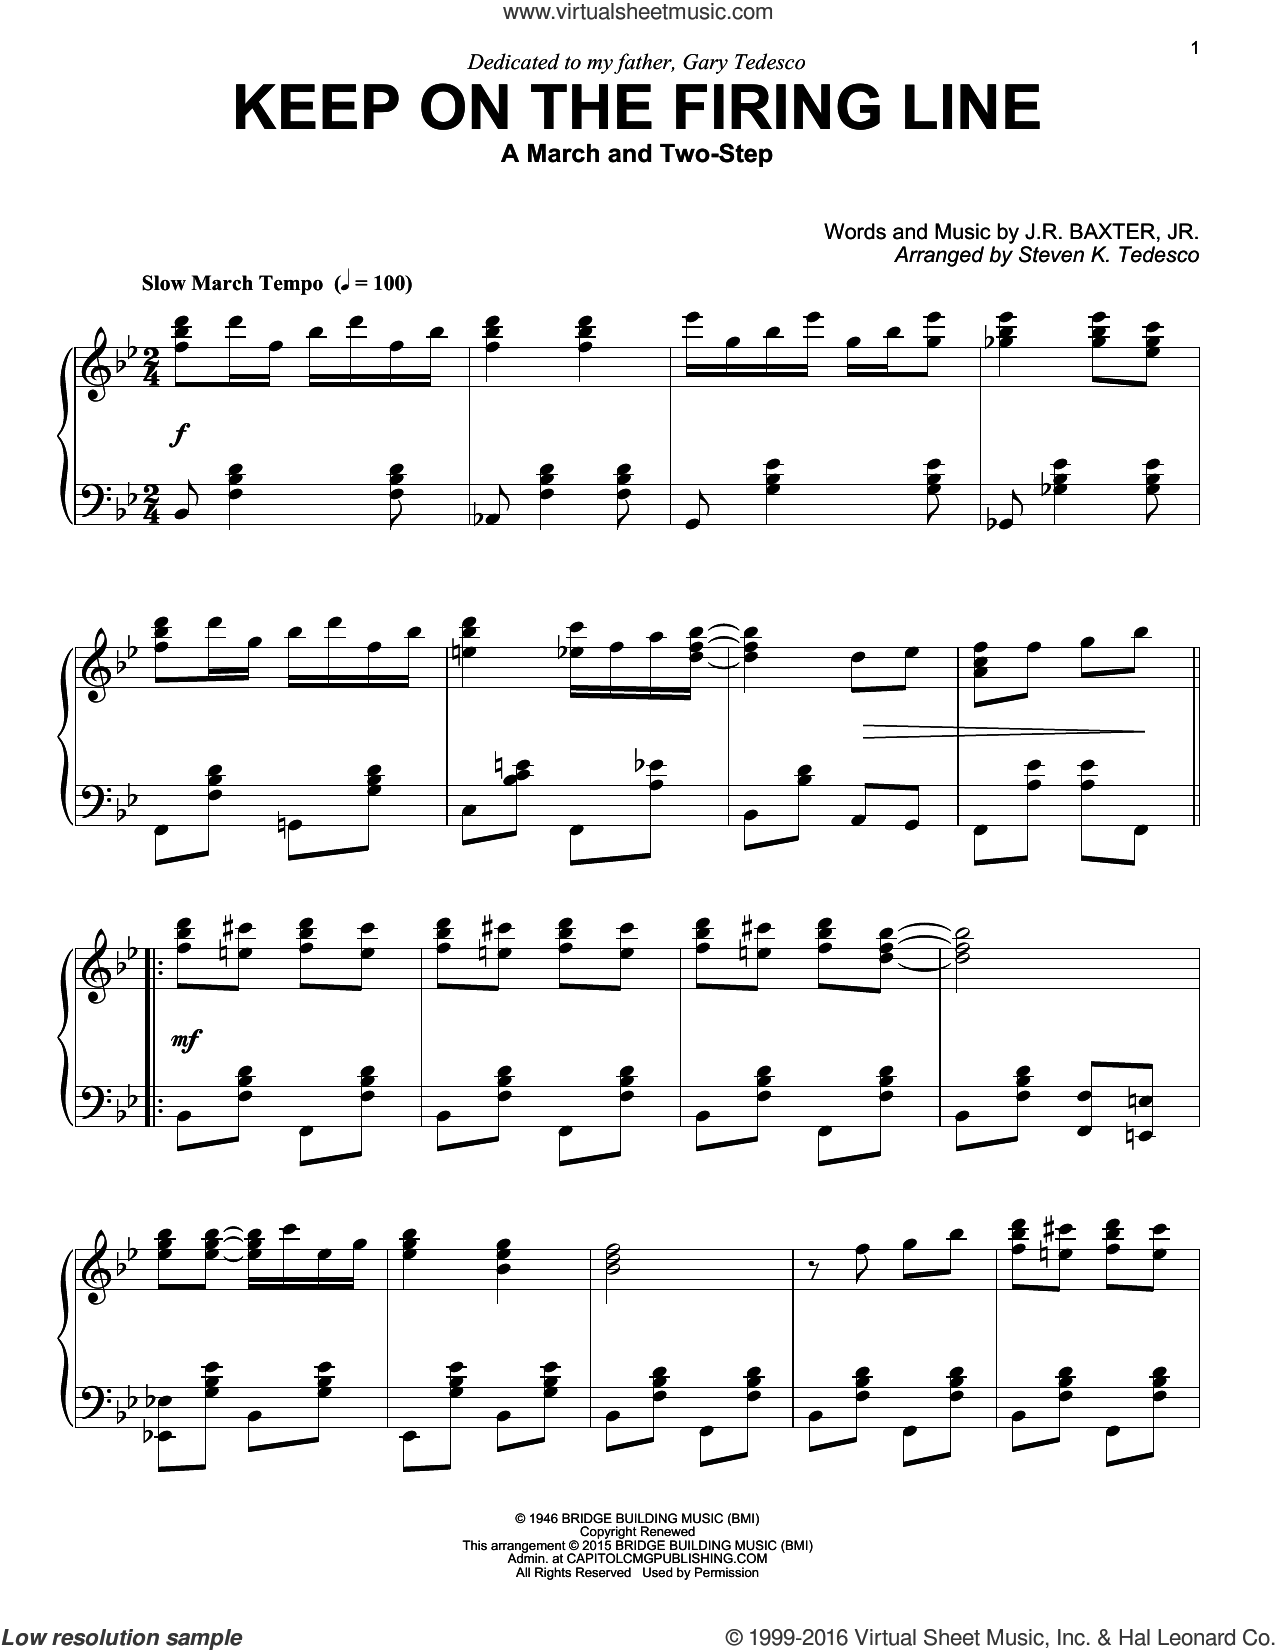 Keep On The Firing Line sheet music for piano solo by Steven K. Tedesco and J.R. Baxter Jr., intermediate skill level